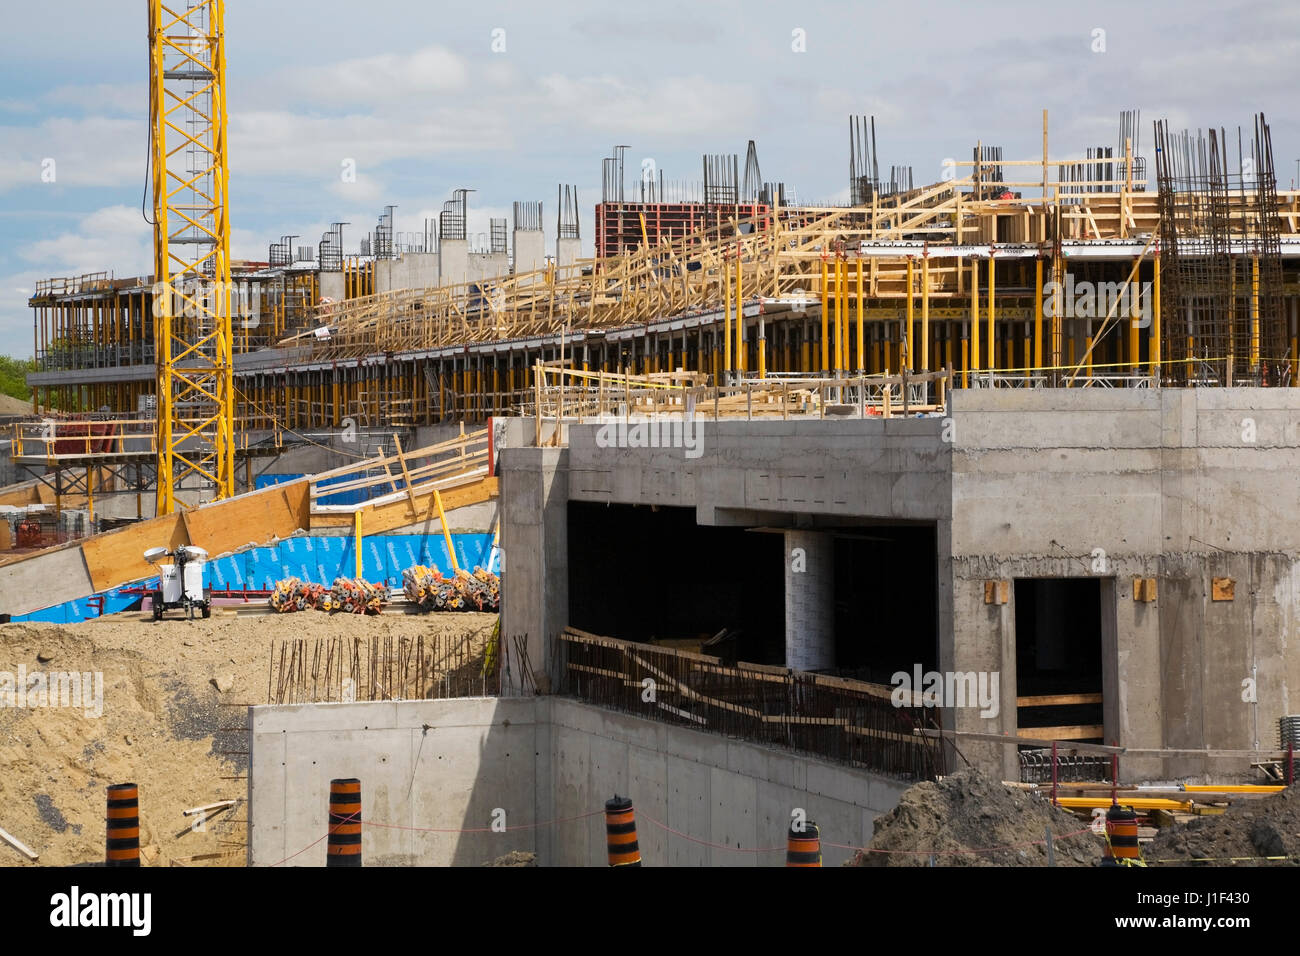 Unfinished sports stadium complex site - Stock Image